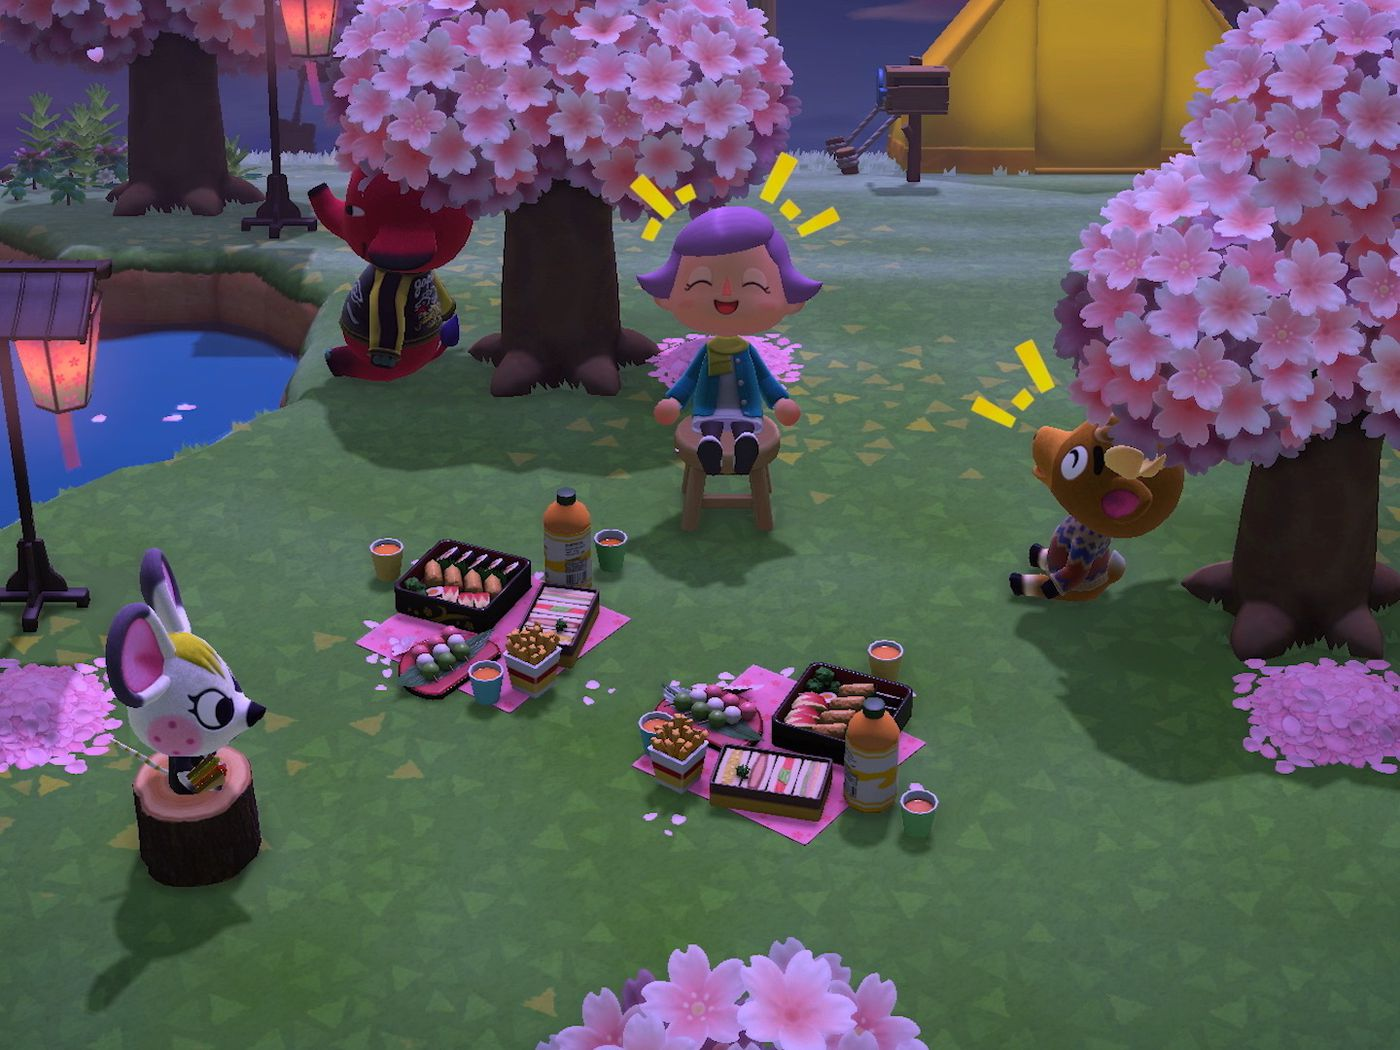 Animal Crossing New Horizons Everything You Need To Know About The Nintendo Switch Adventure The Verge